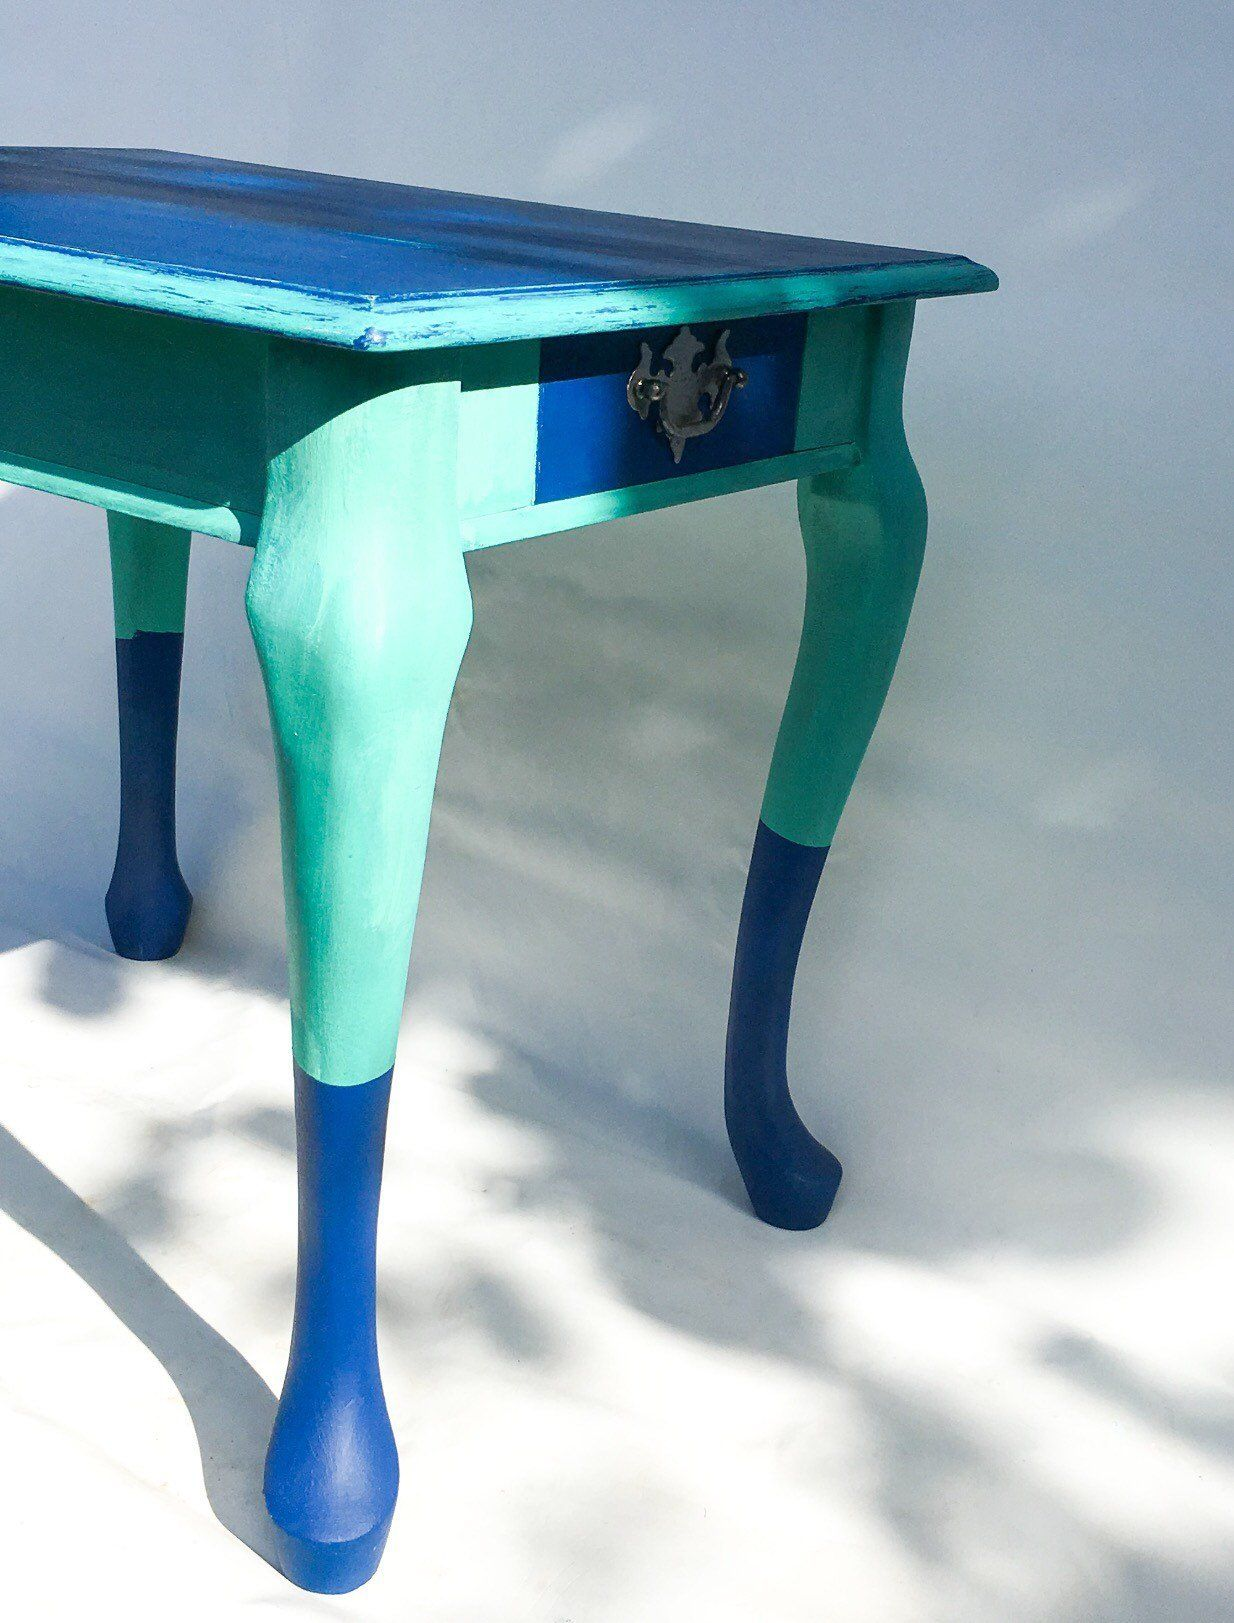 Ornate Side Table Upcycled End Table Coffee Table Rustic Charm Navy Blue And Green Quirky Furniture House Warming Gift Hand Painted Rustic Charm End Tables Dark Wax